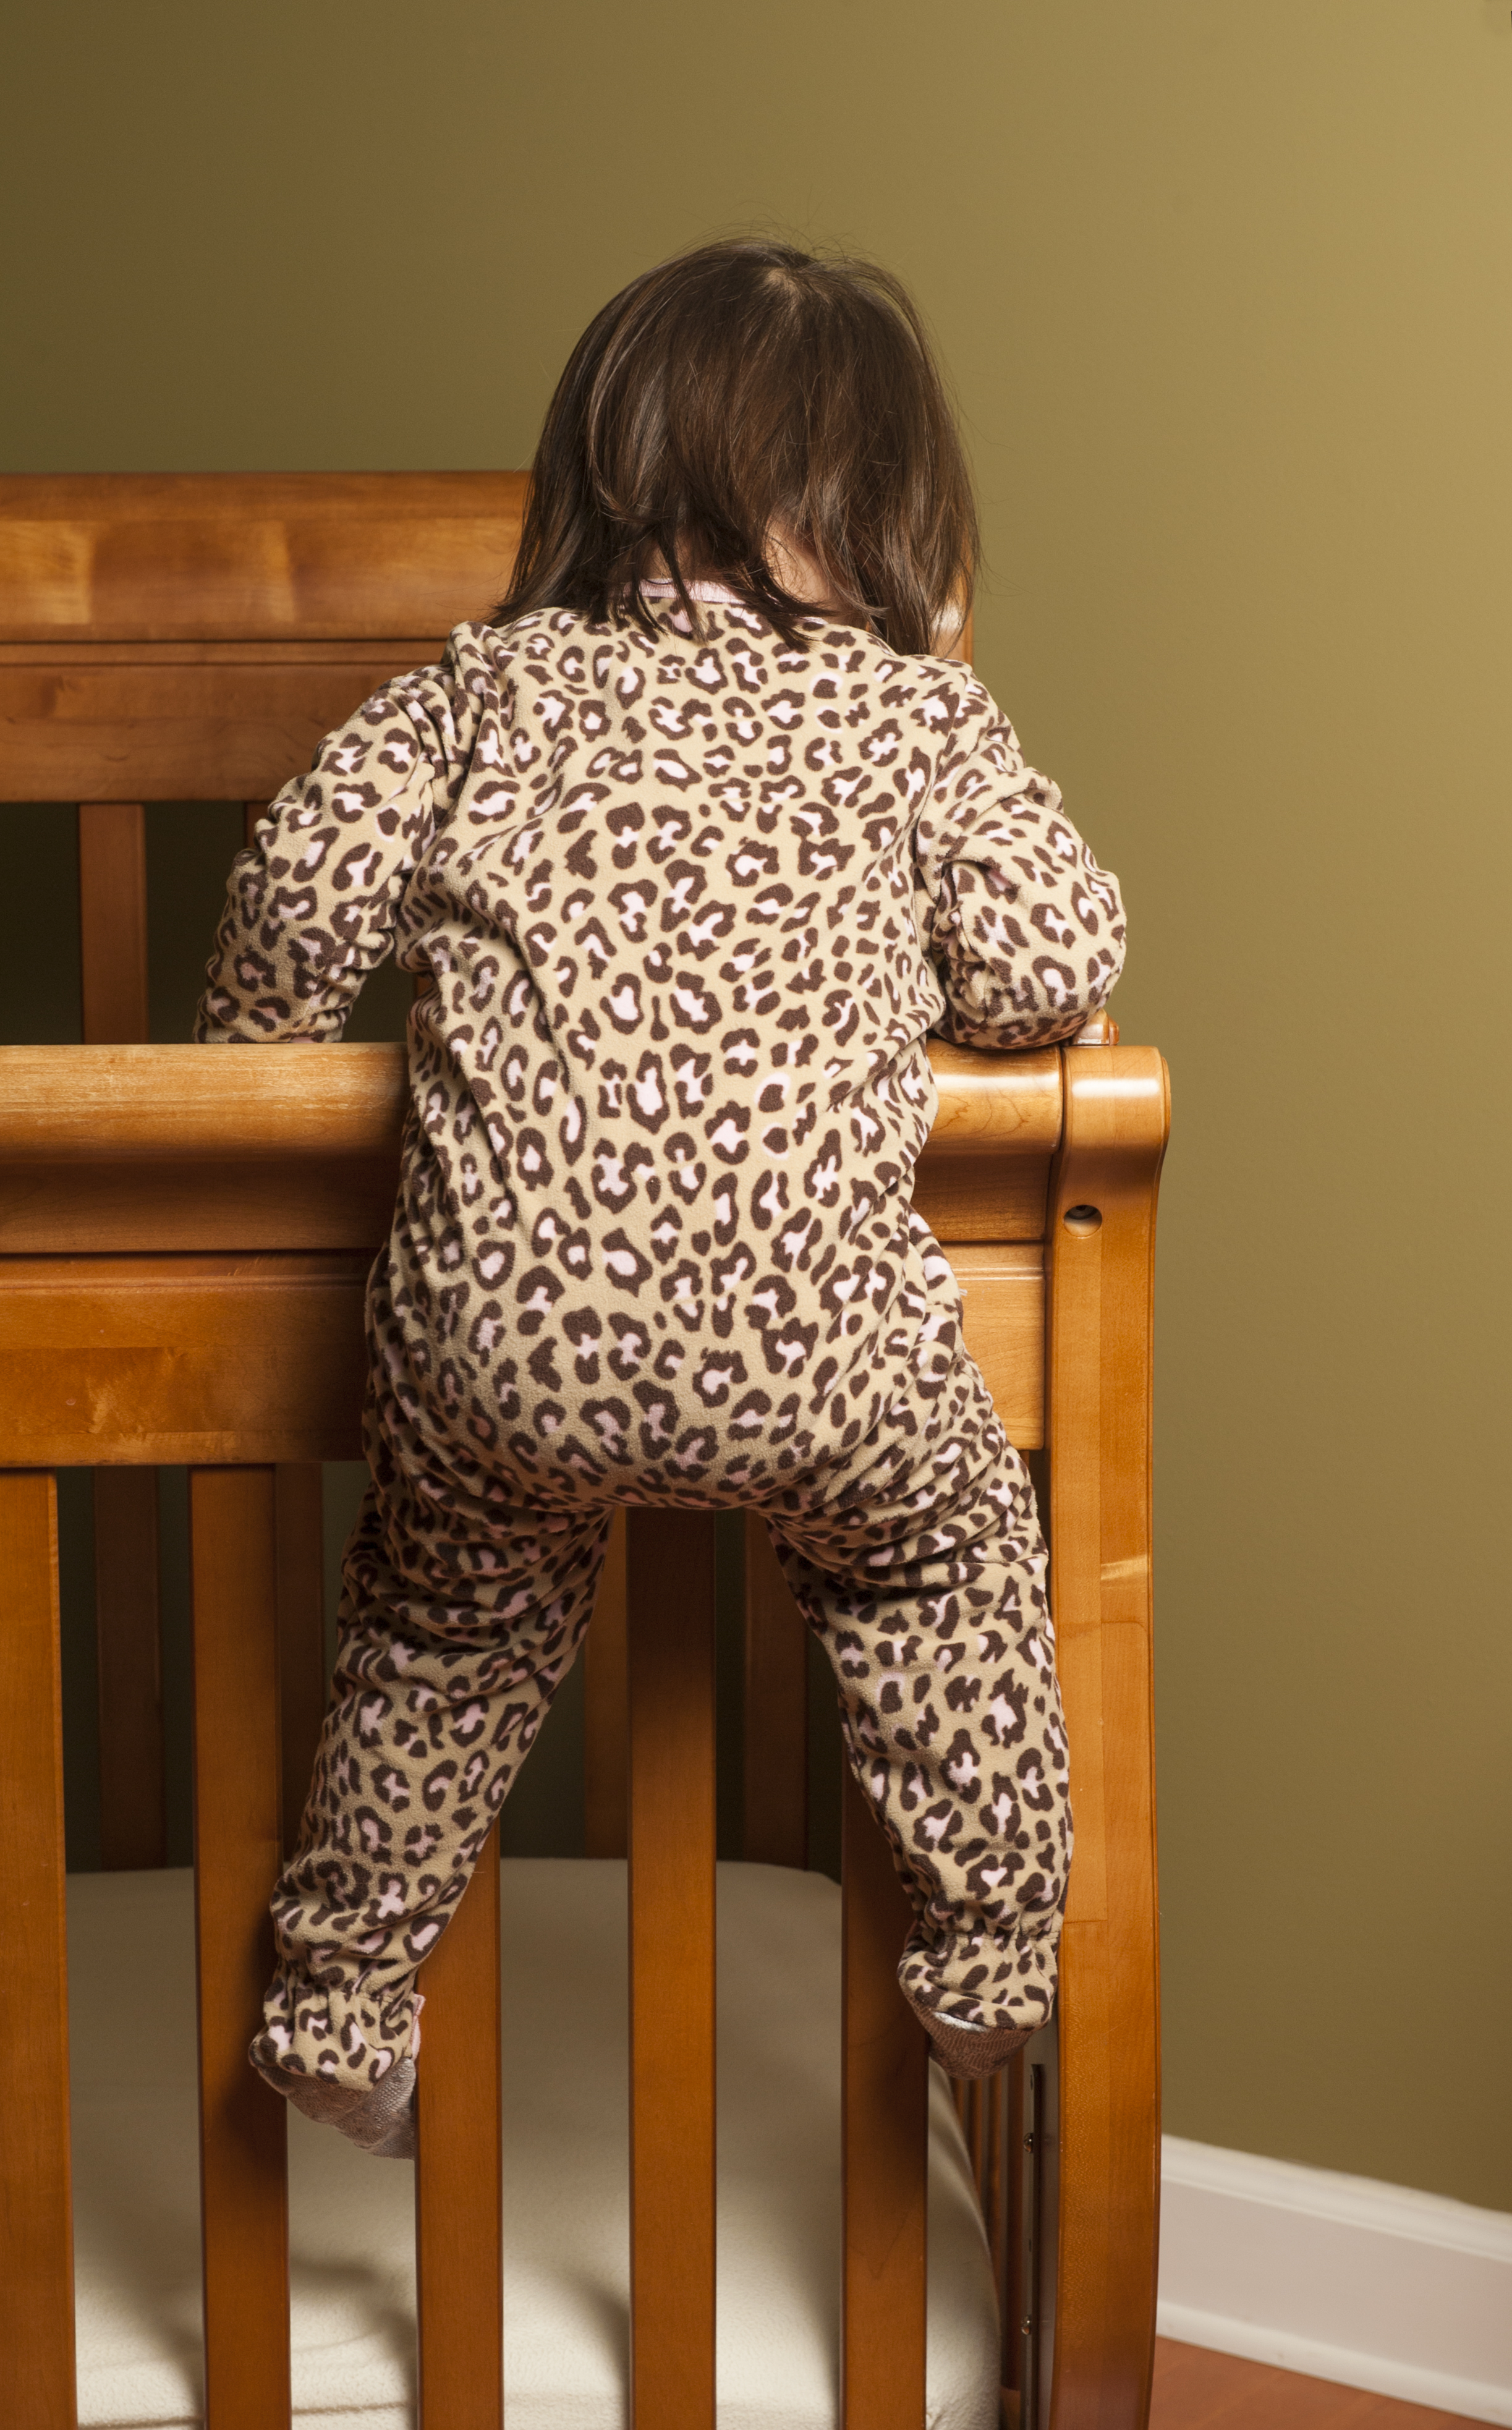 Baby cribs keep your baby close -  Climber 3 Use A Cue To Tell Your Child